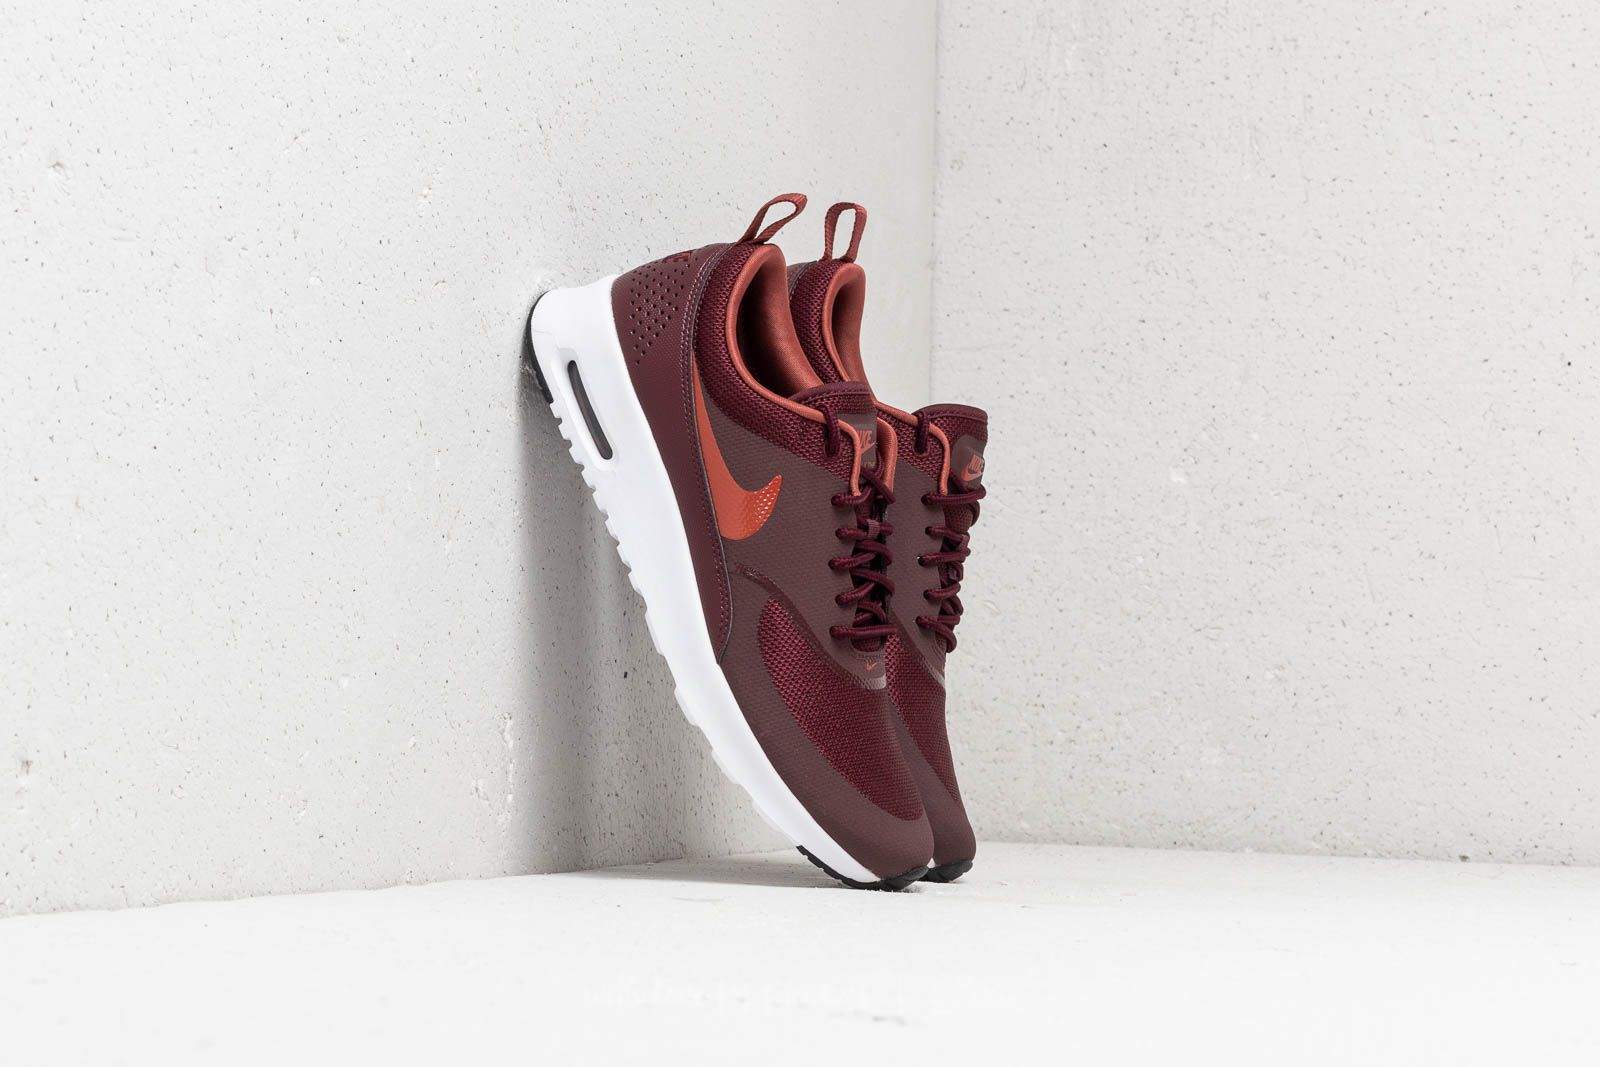 89b4c1b857 ... reduced nike wmns air max thea burgundy crush burnt orange at a great  price 121 fc049